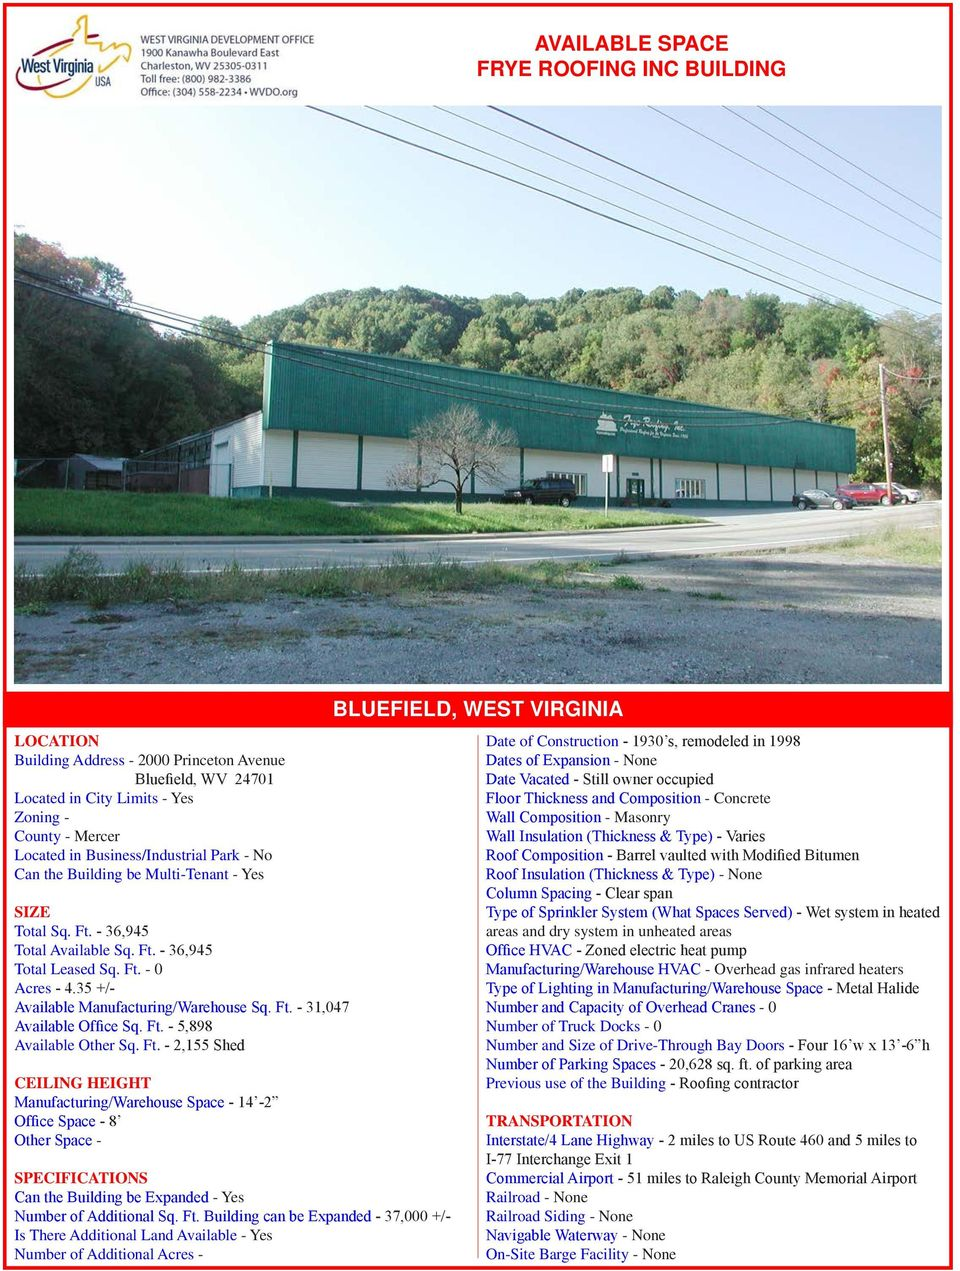 Ft. - 5,898 Available Other Sq. Ft.